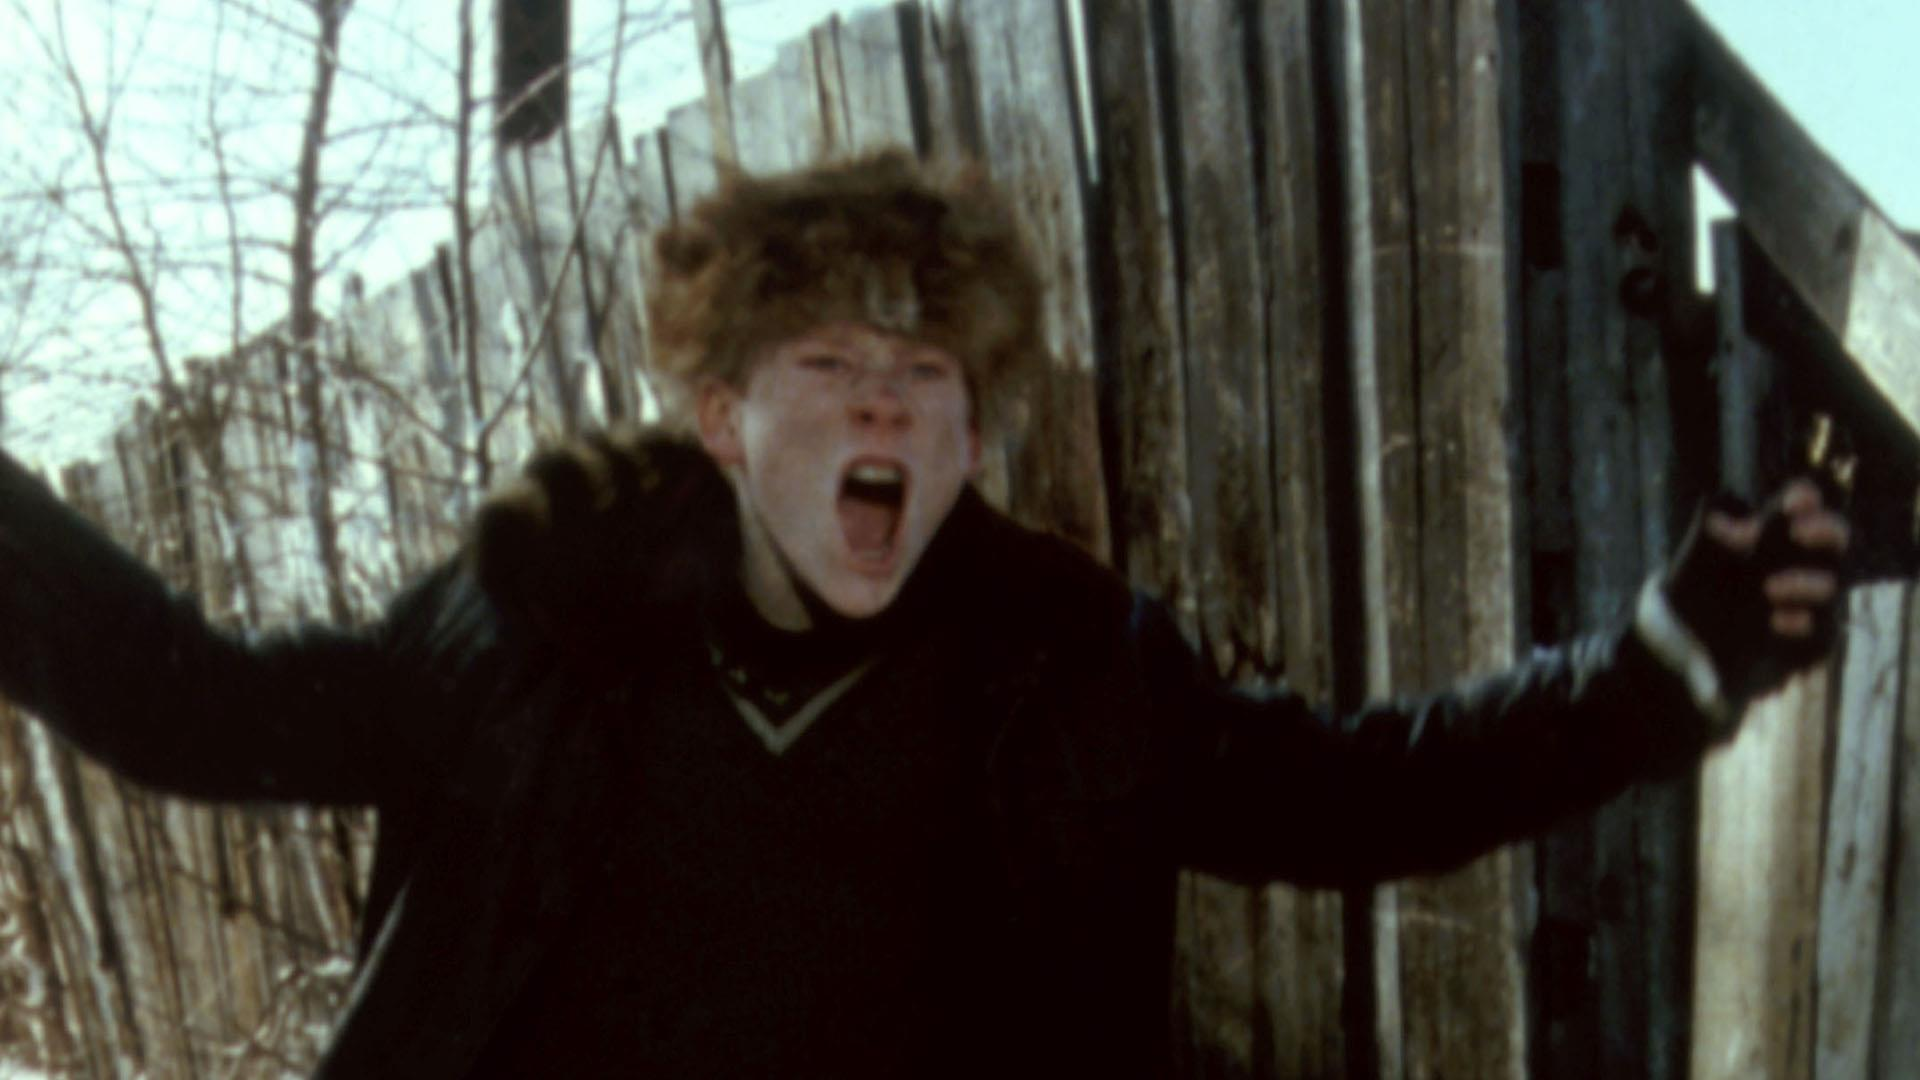 Christmas Story Bully.Flashback A Christmas Story Actor Zack Ward Talks Playing Scut Farkus